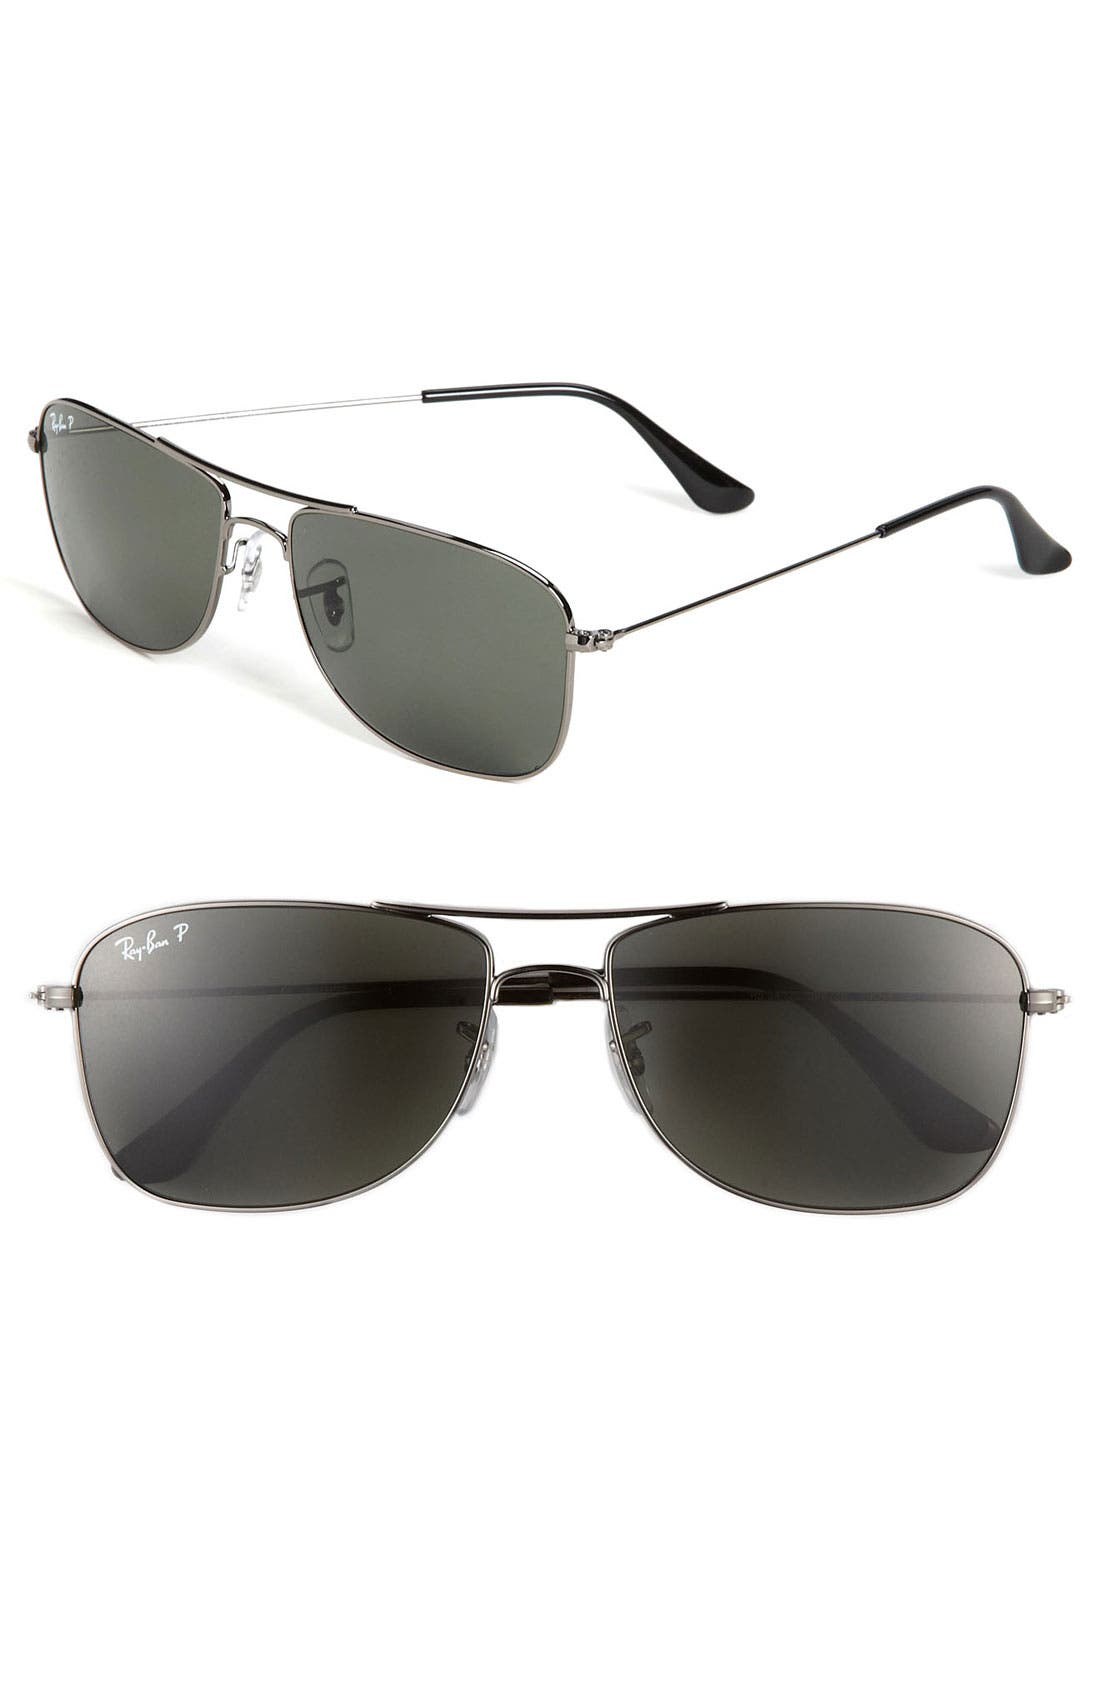 Main Image - Ray-Ban 'M Mod Caravan' 59mm Polarized Aviator Sunglasses